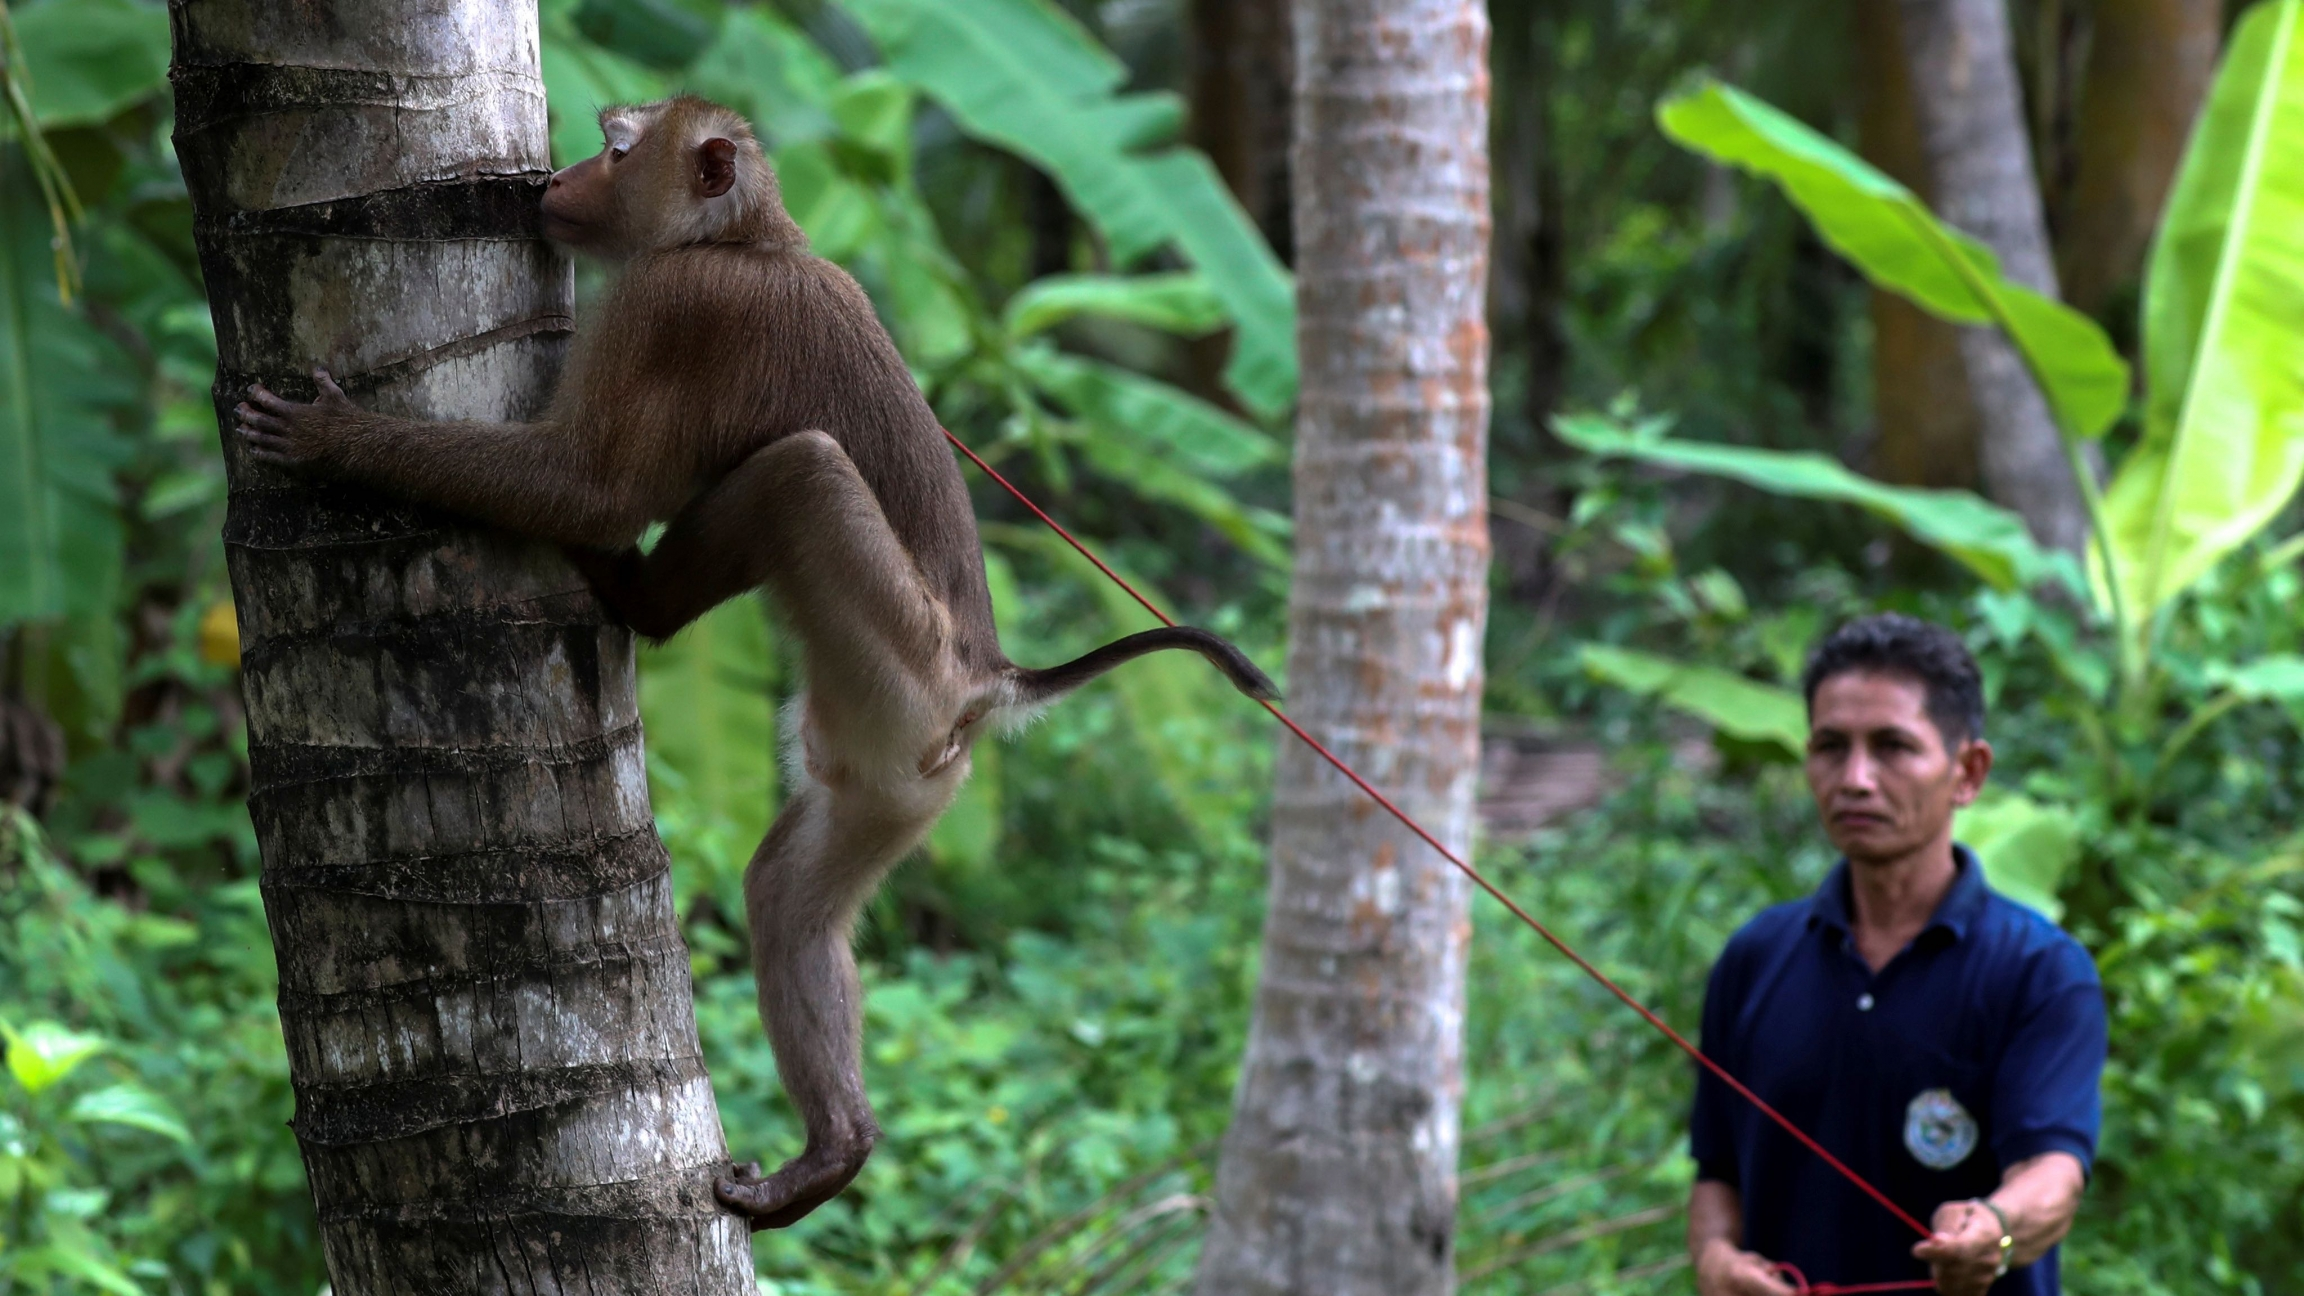 Nirun Wongwanich, 52, a monkey trainer, trains a monkey during a training session at a monkey school for coconut harvest in Surat Thani province, Thailand, July 10, 2020.